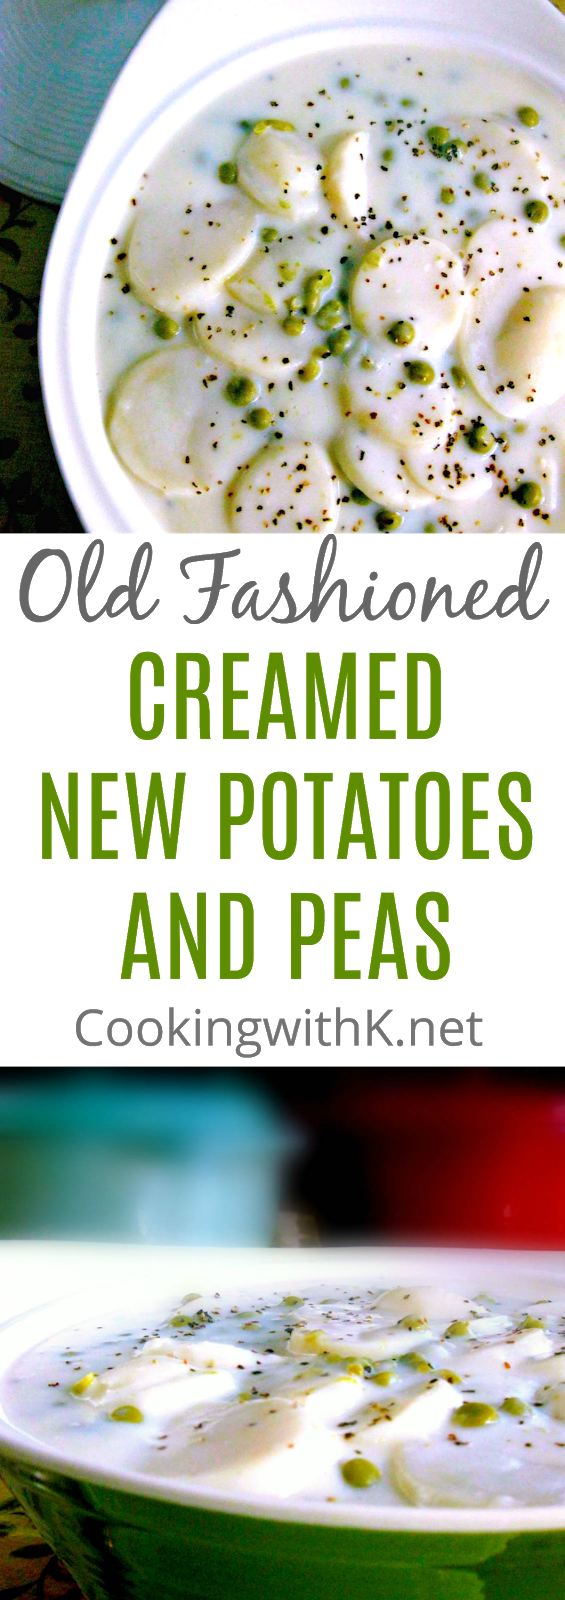 Old Fashioned Creamed New Potatoes and Peas, sometimes called Southern New Potatoes in a White Sauce.  There is one thing for sure about this recipe for New Potatoes, and English Peas smothered in a creamy white sauce is it has been around for ages.  My Mother passed it down to me, and her Mother passed it down to her, tried and true recipe.